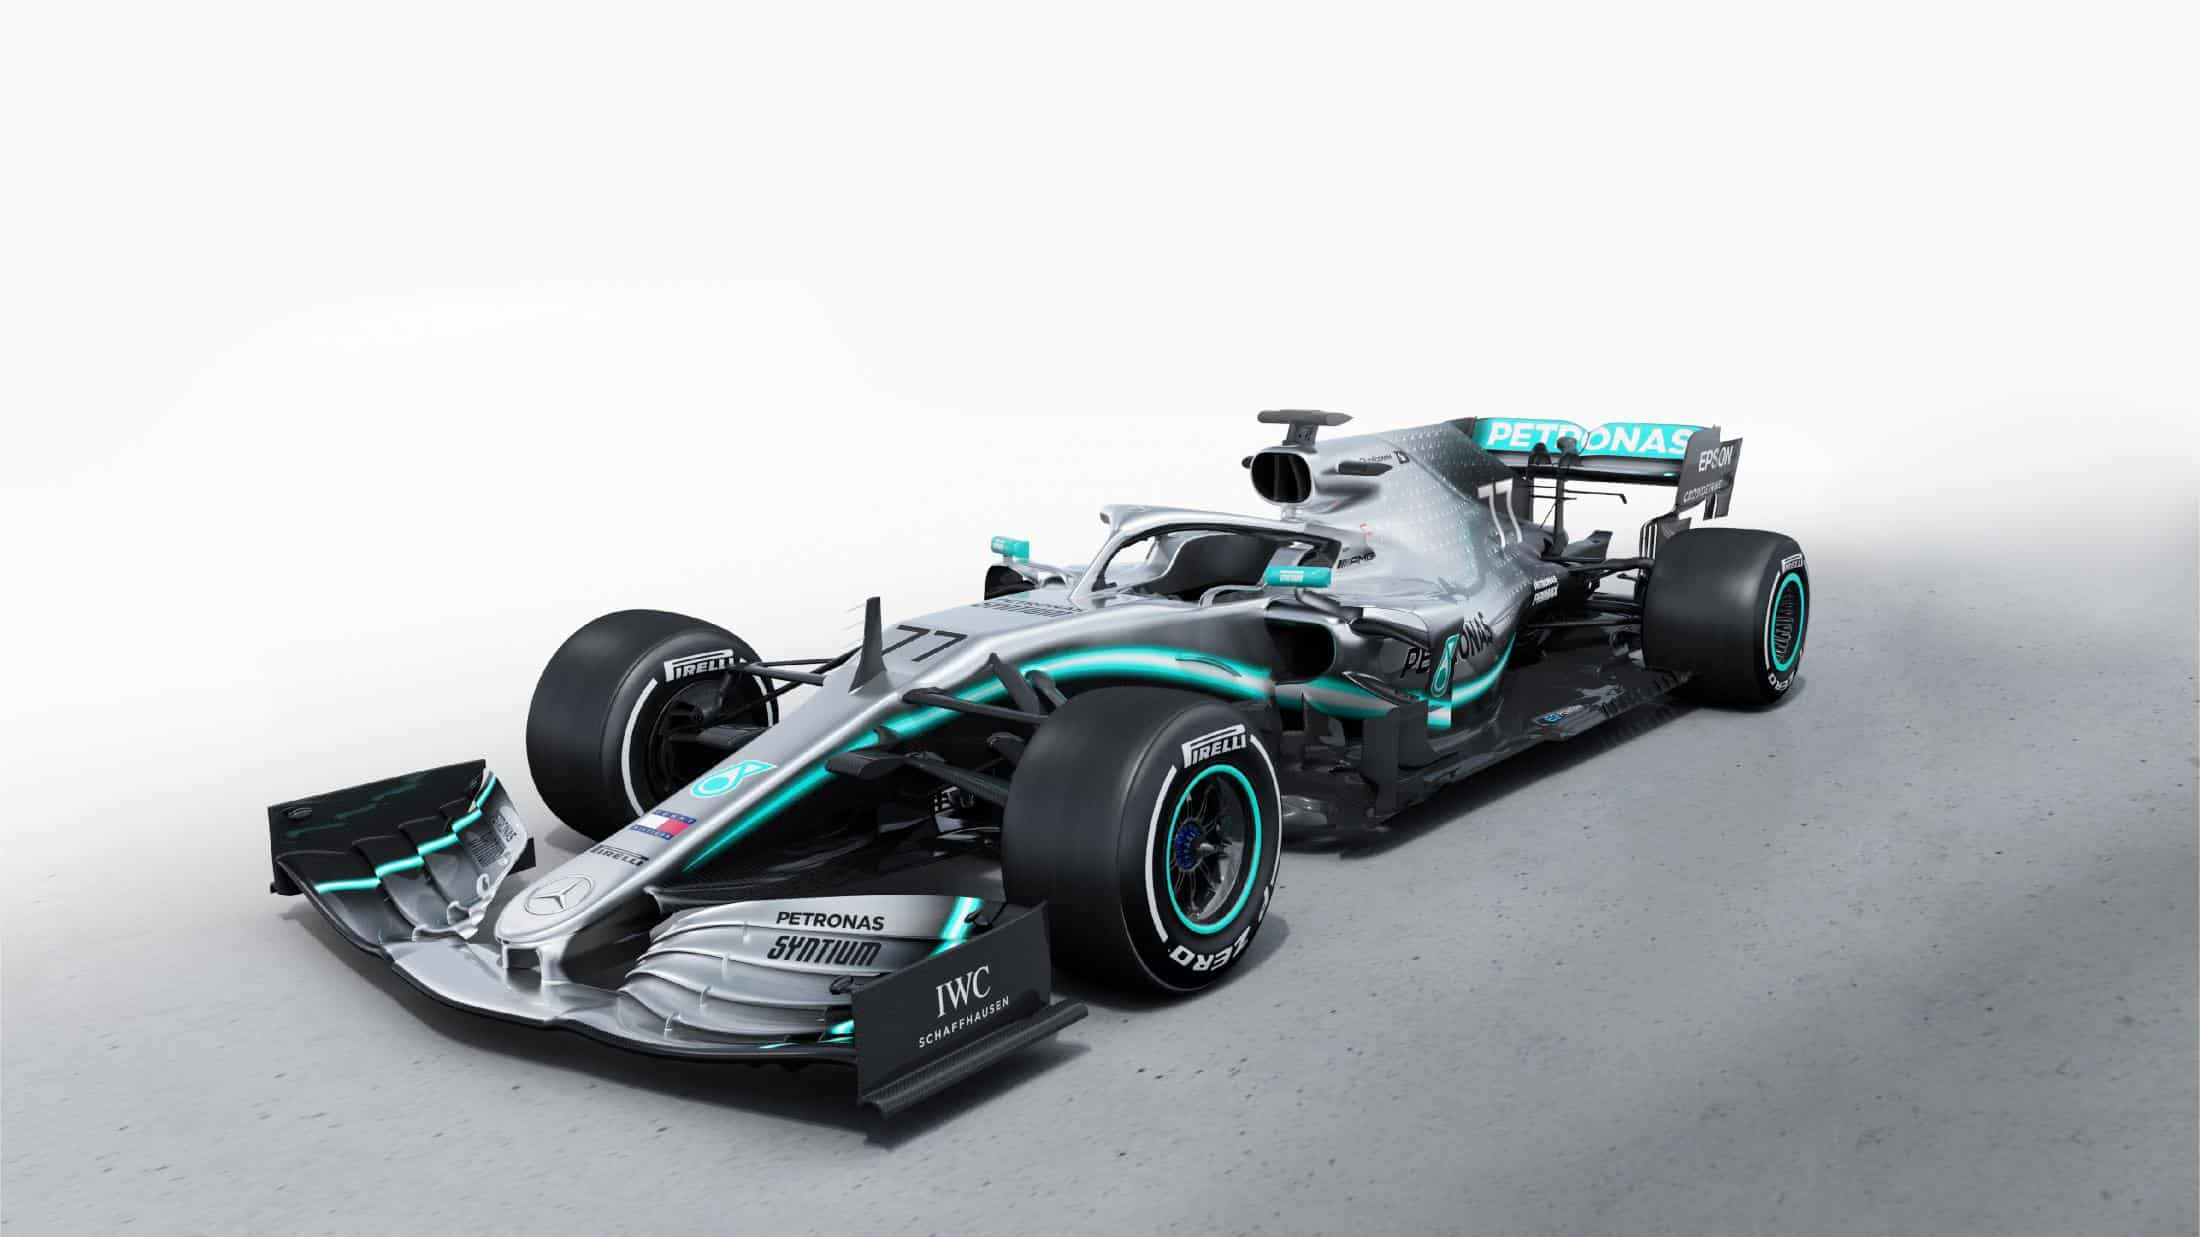 Mercedes F1 W10 EQ Power + studio photo side angle hi res